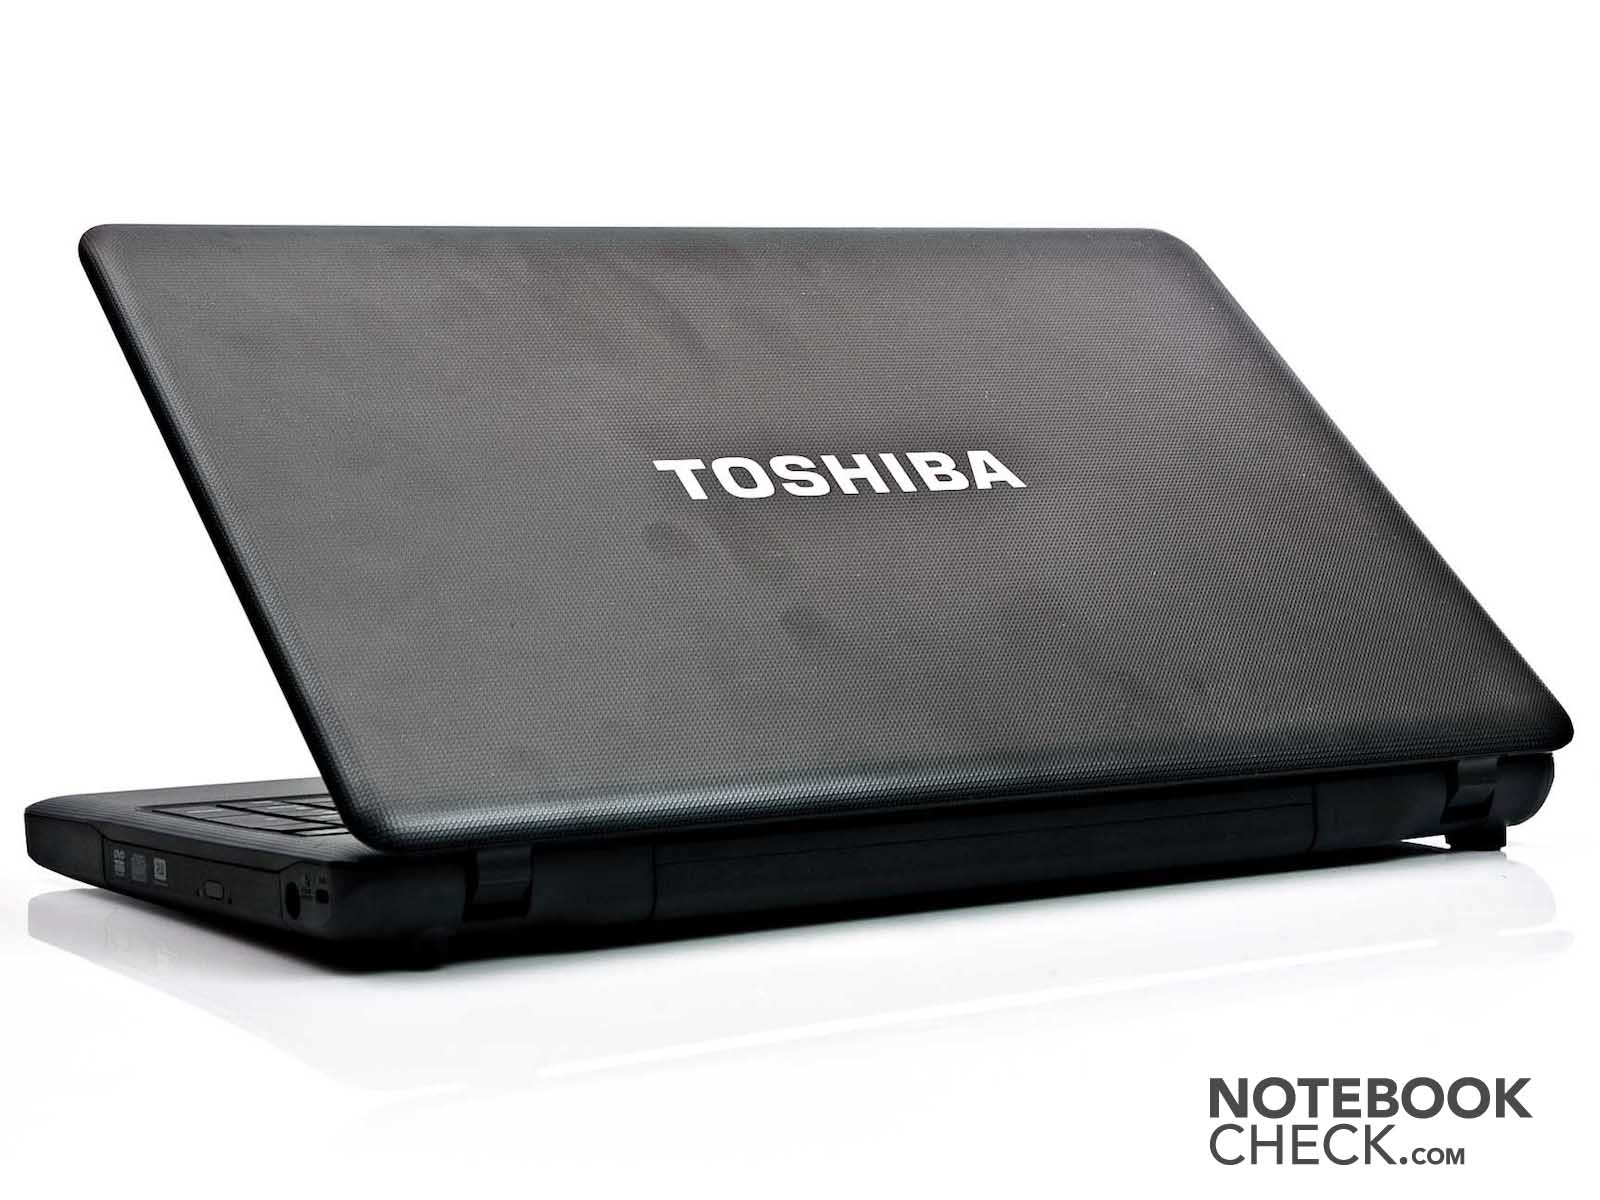 TOSHIBA SATELLITE C660-20K DRIVER FOR WINDOWS 8